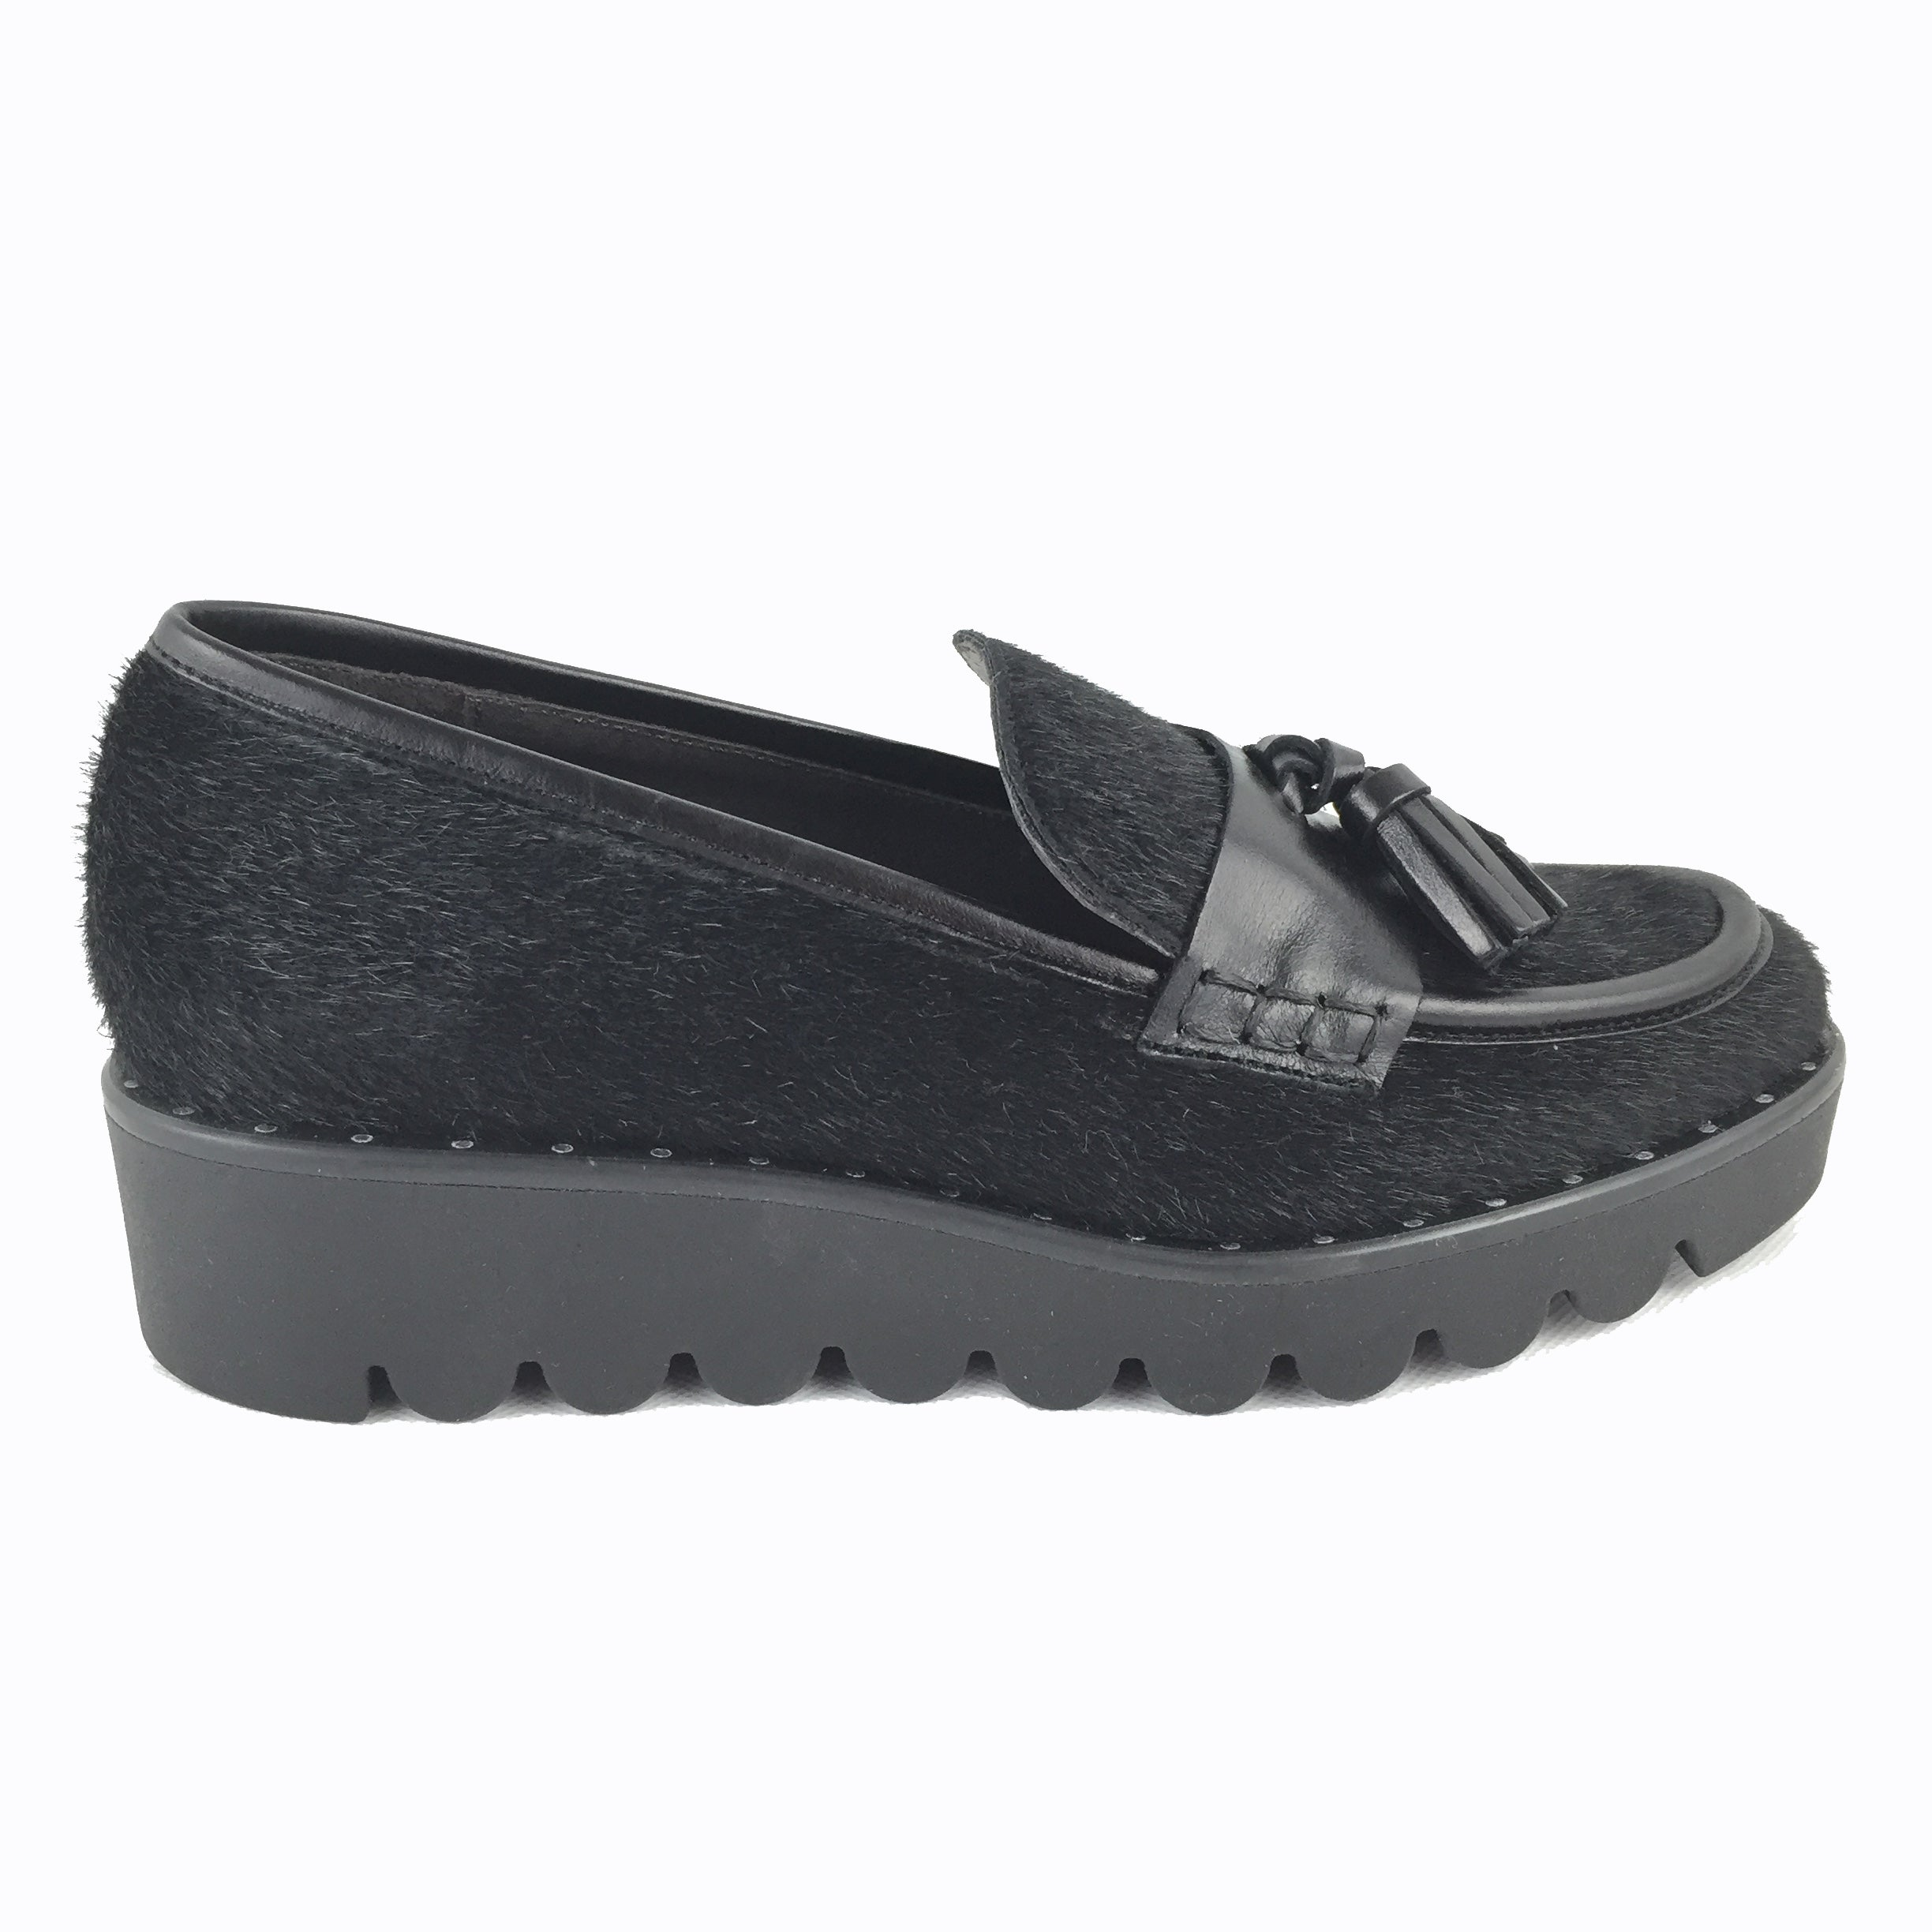 Cherrypic Black slip on Loafer. Slip on with black slight wedged sole. Front tassels and pony hair design.